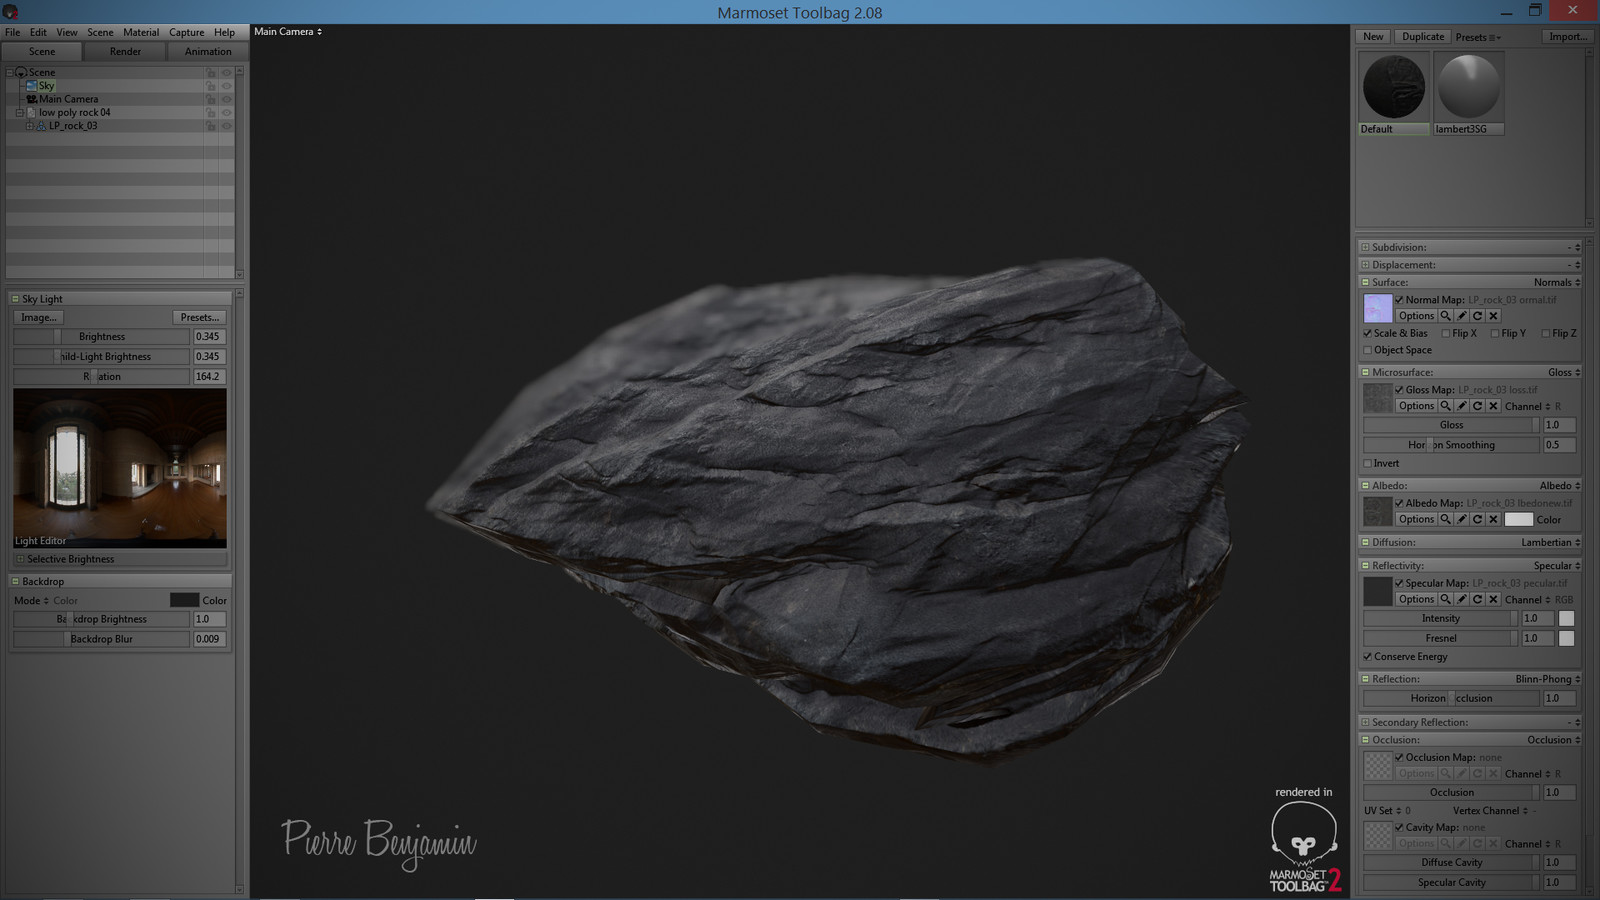 Rocks test WIP Zbrush/ Marmoset 2